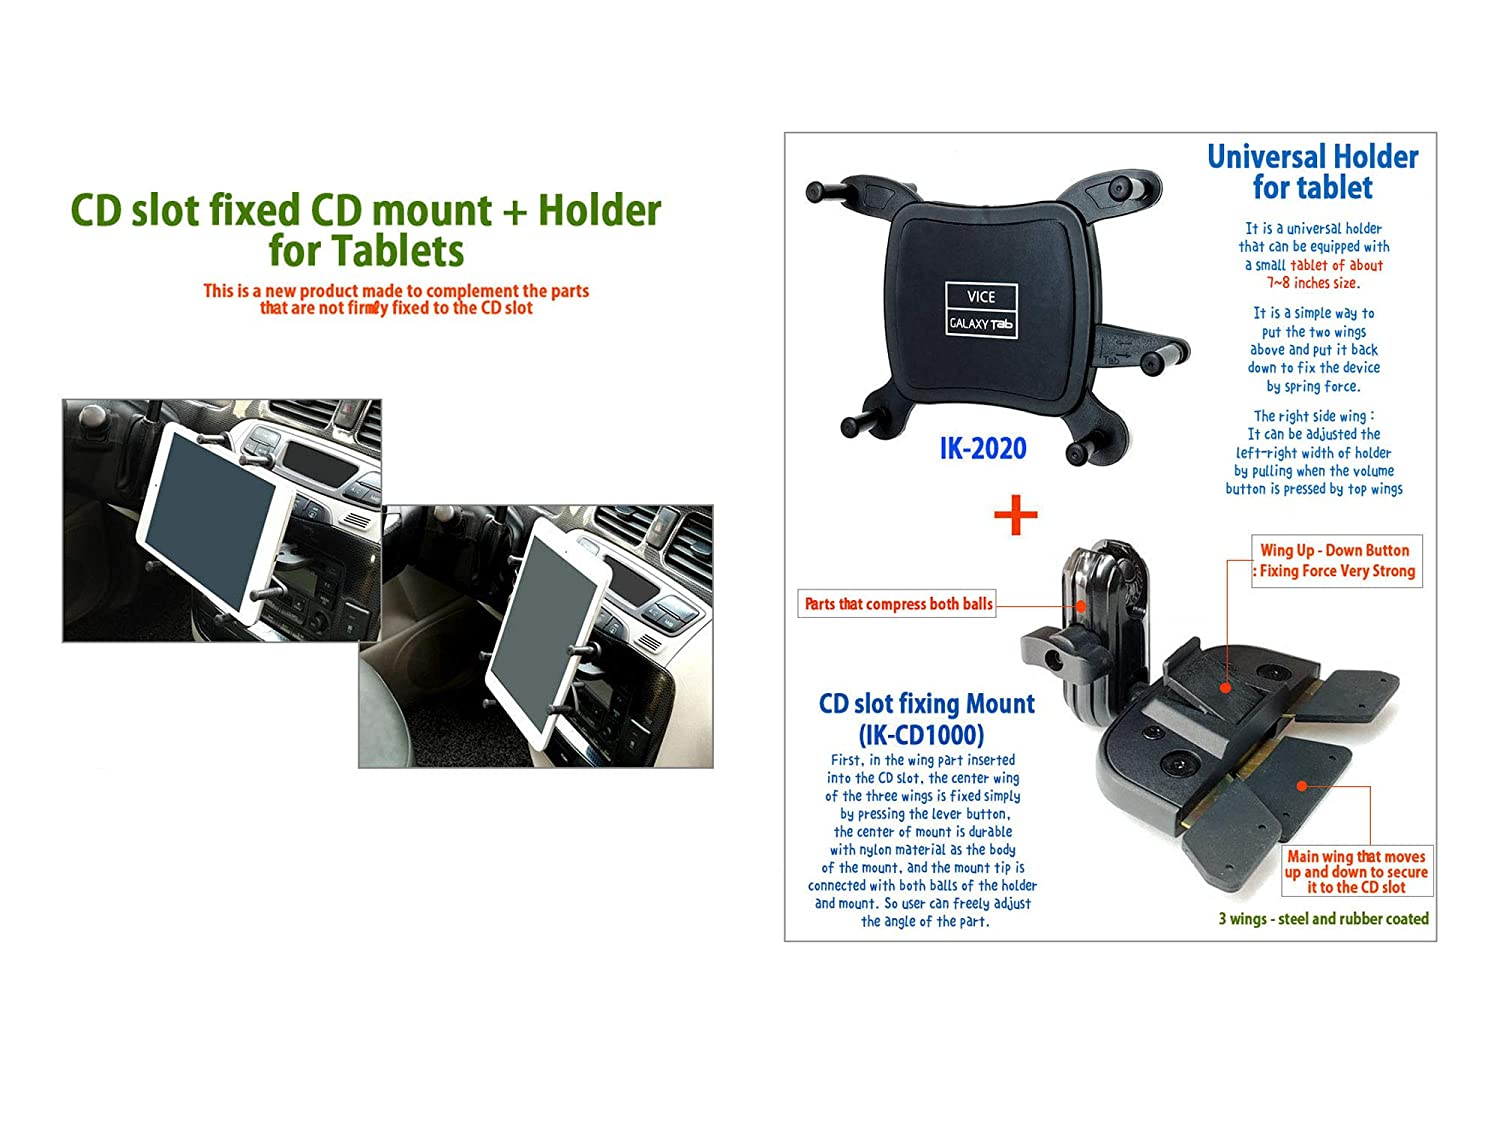 Best 7 Inch Tablet 2020 Amazon.com: CD Mount Firmly clamped Inside The CD Slot + Universal